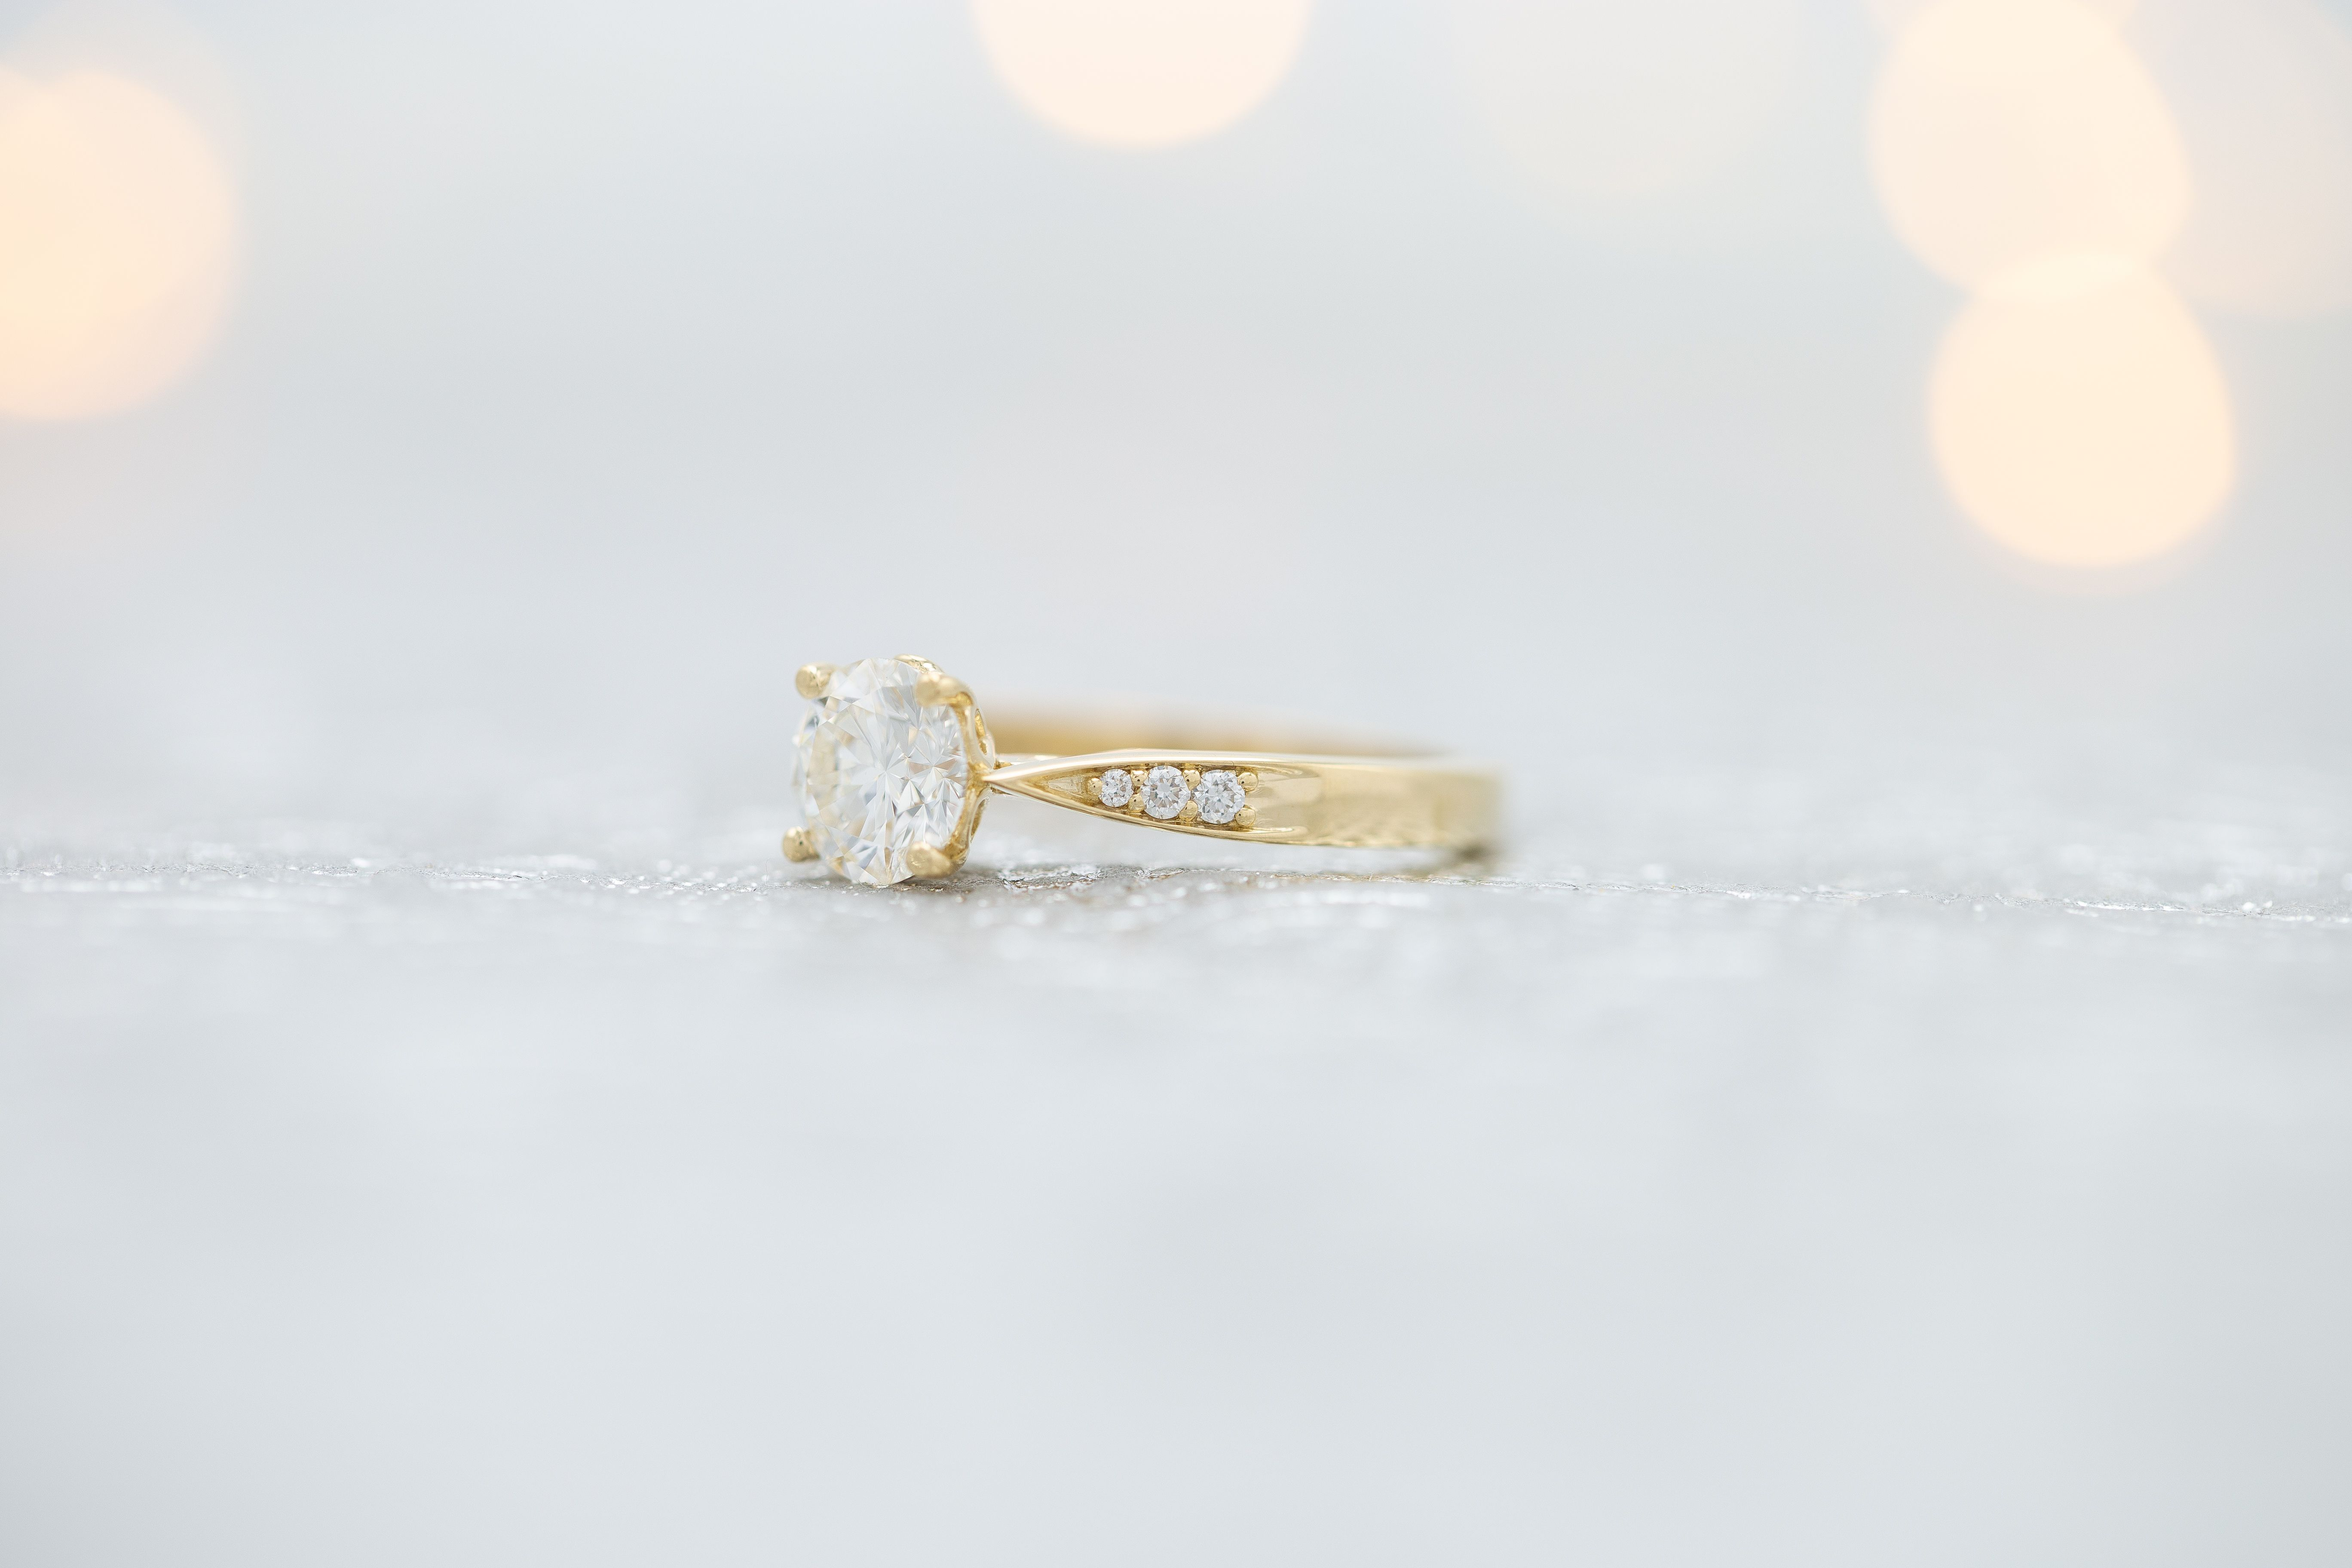 Engagement Rings - Wedding Rings & Fine Jewelry | CustomMade